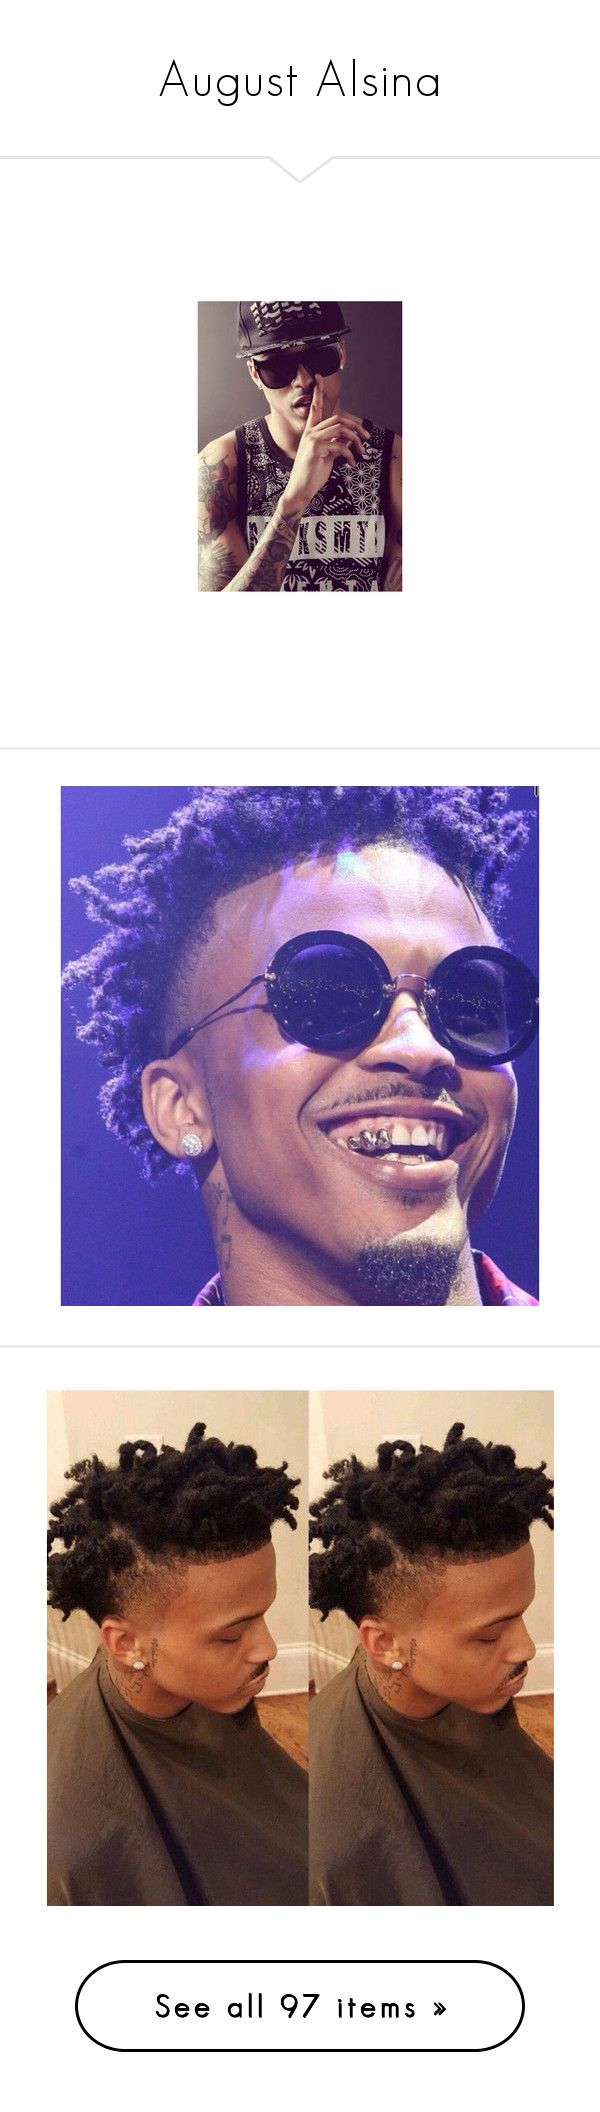 """August Alsina"" by kingkid03 ❤ liked on Polyvore featuring august alsina, august, bae, boys, pic, people, anon, pictures, celebrities and boy"